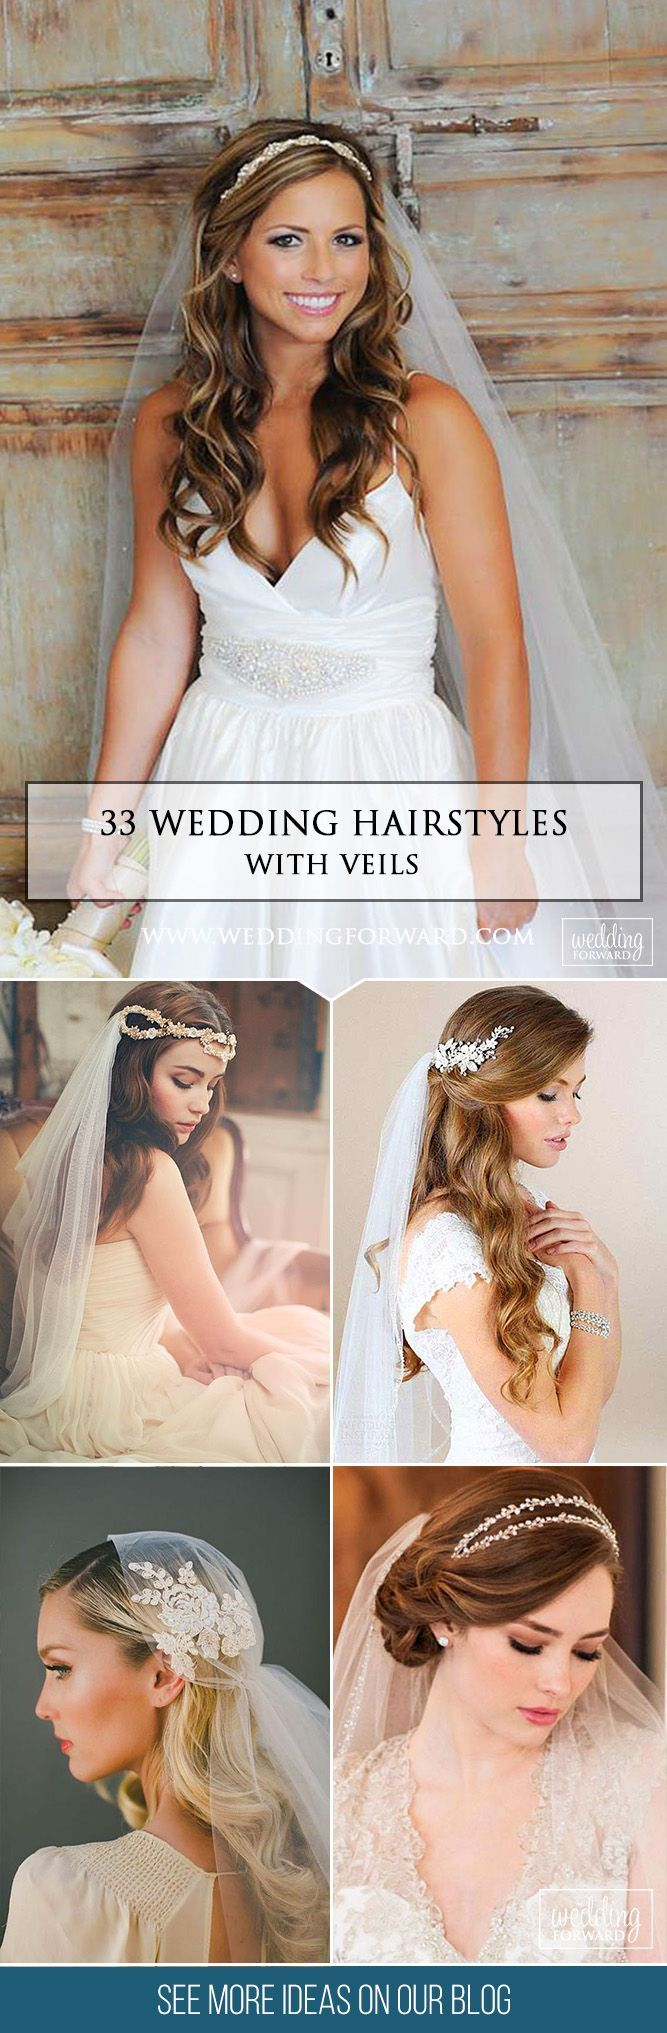 25 Best Ideas About Long Wedding Hairstyles On Pinterest: Best 25+ Wedding Hairstyles Ideas On Pinterest